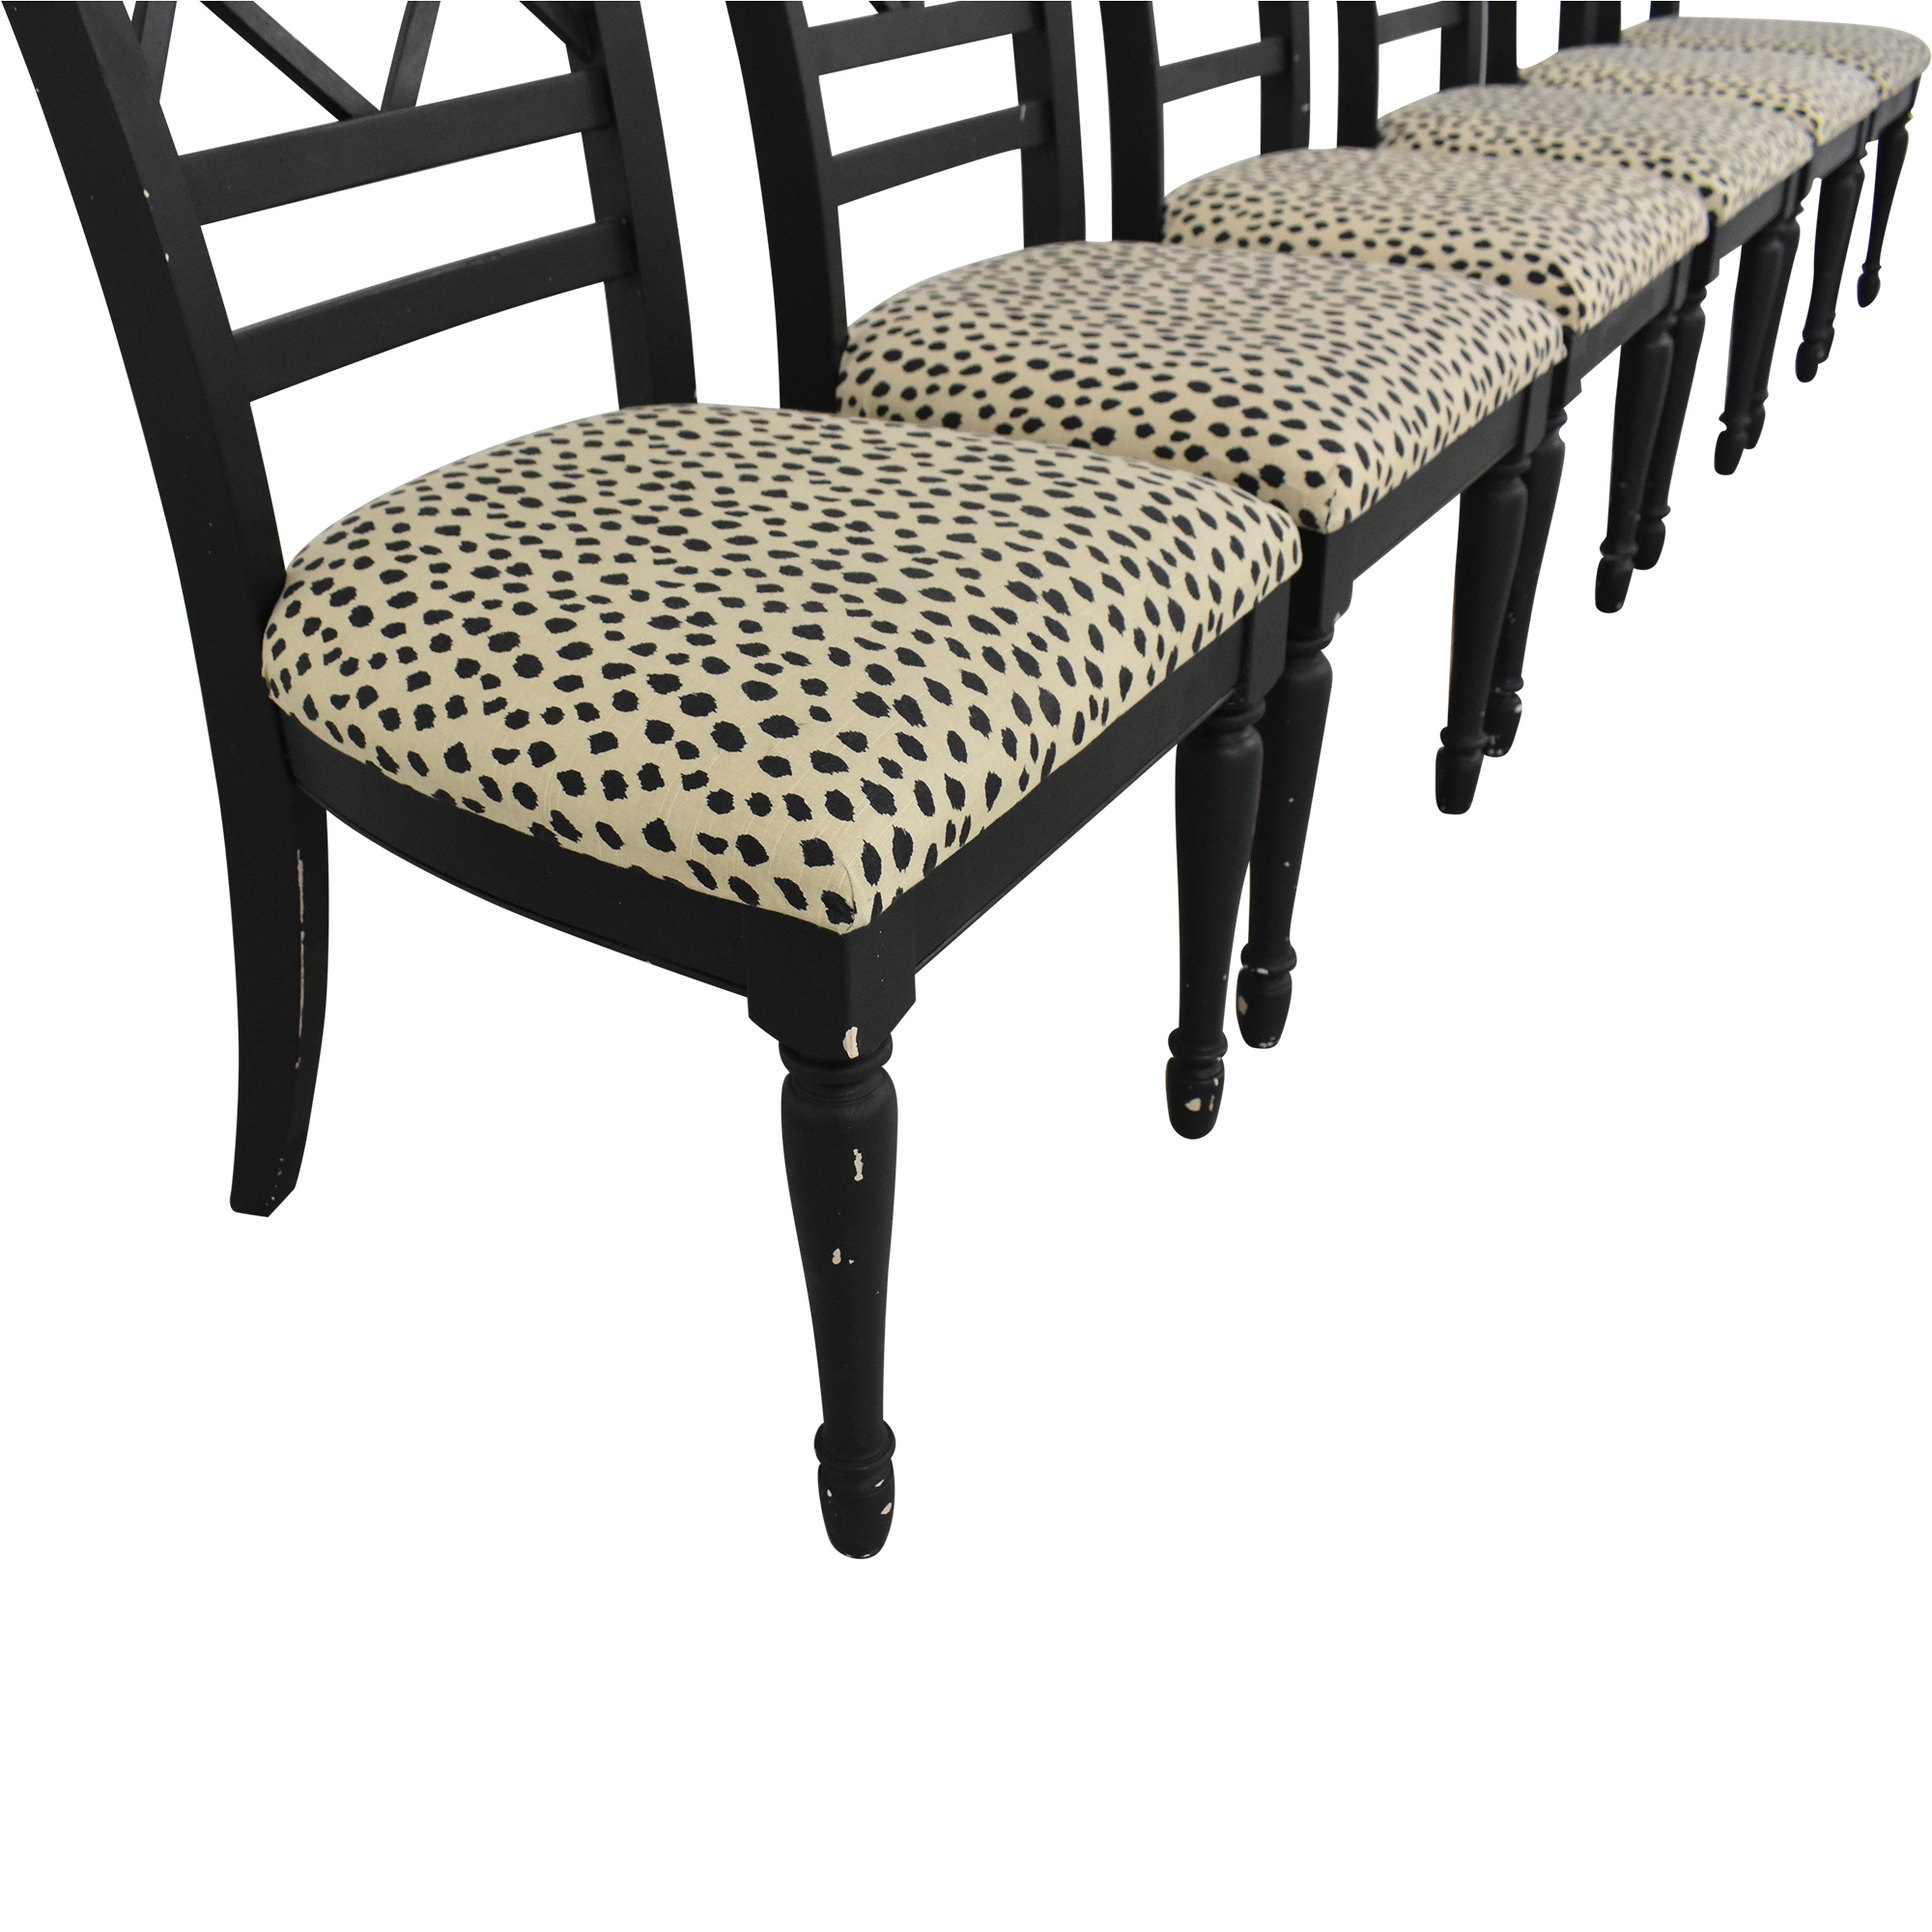 Cresent Furniture Cresent Fine Furniture Dining Chairs used